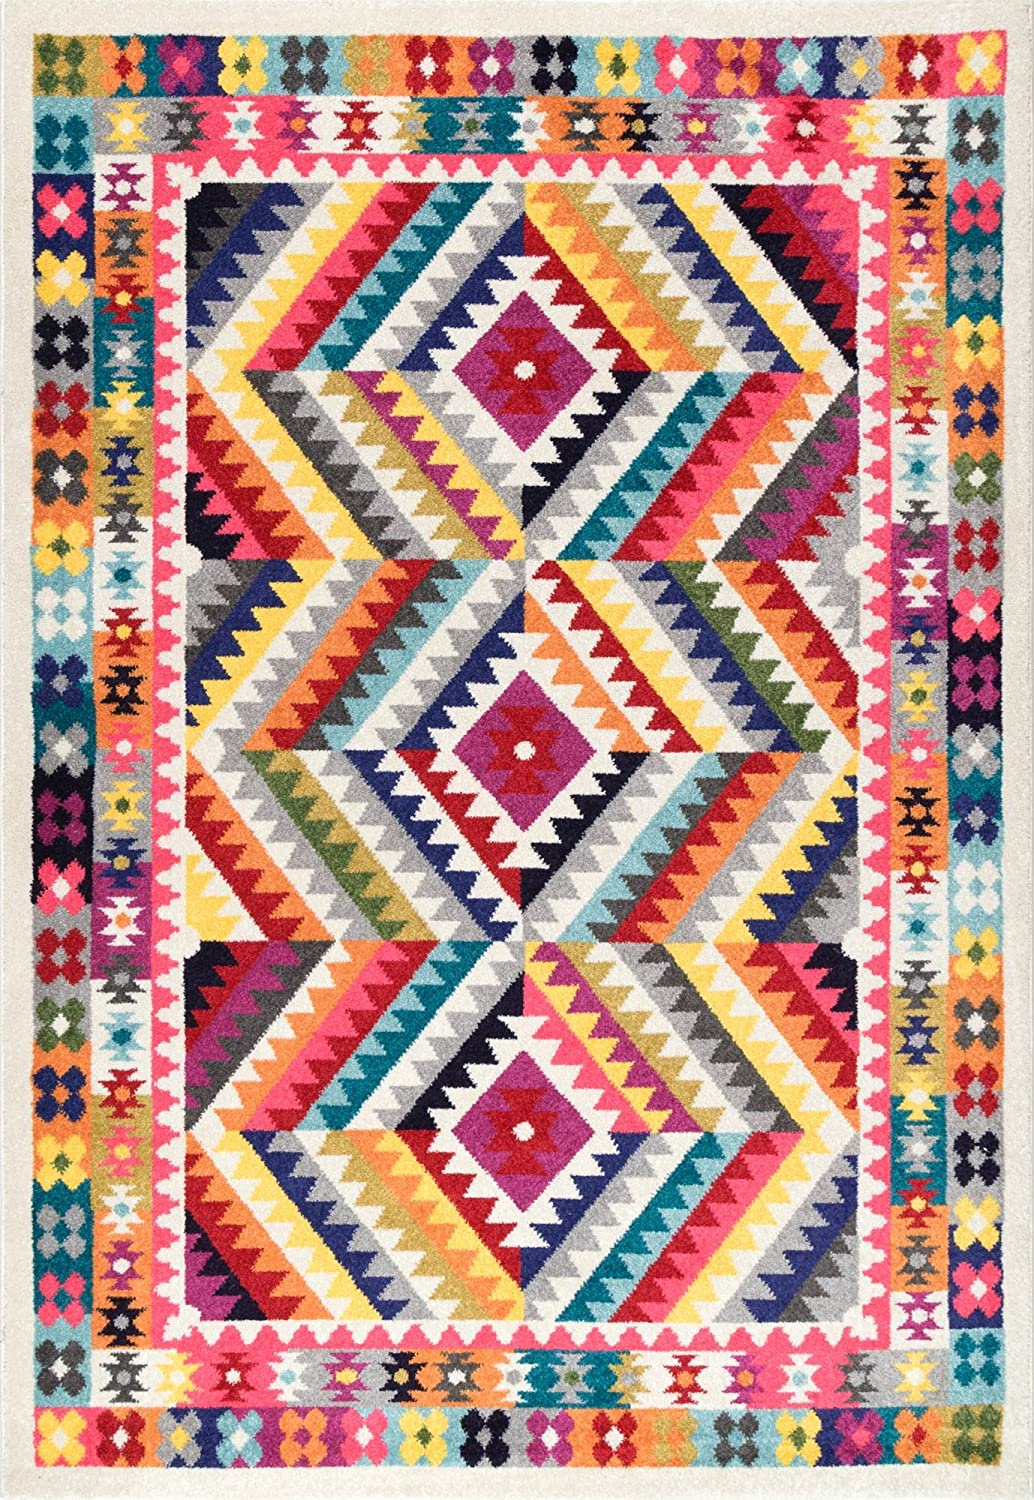 Colorful patterned rug.